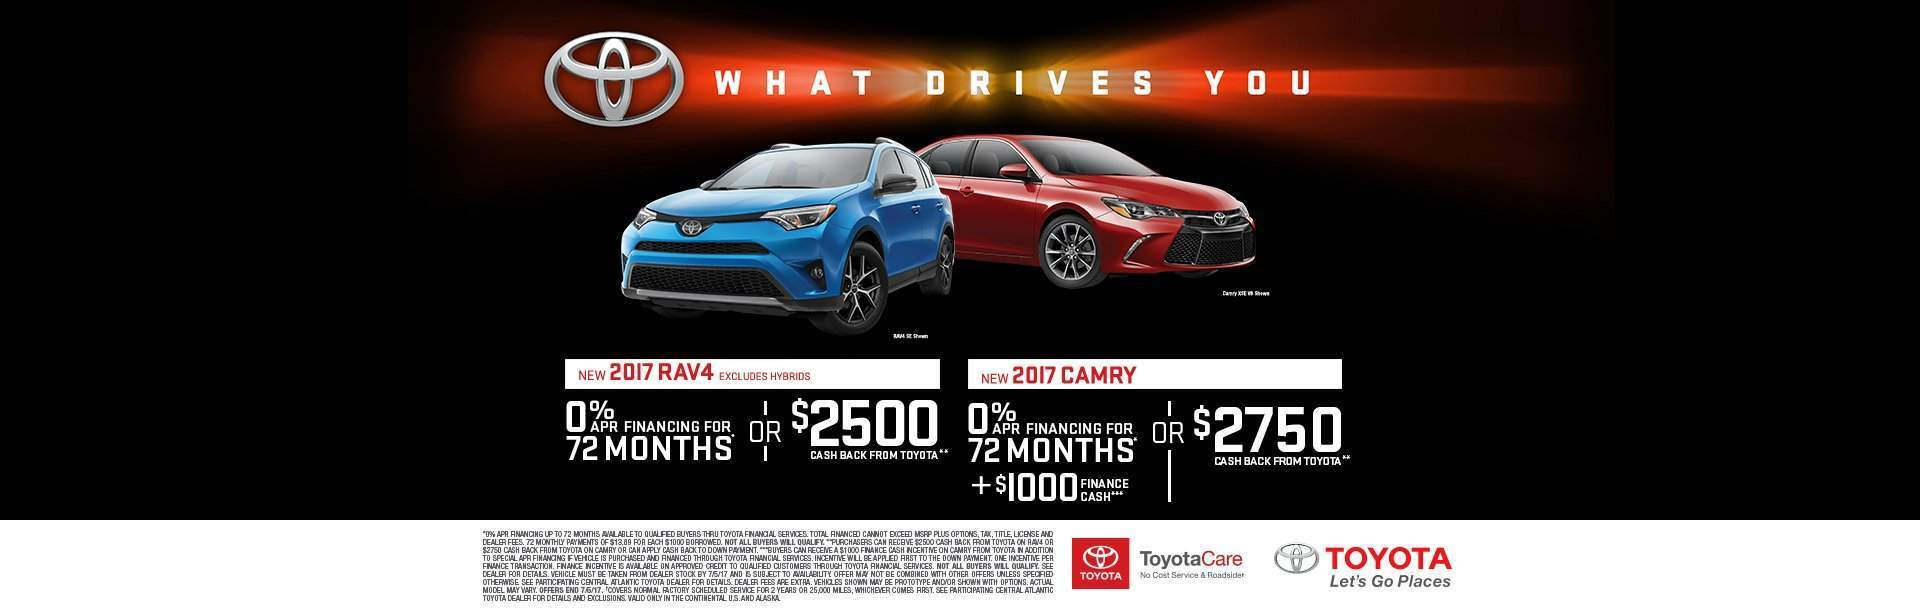 What Drives You Rav4/Camry